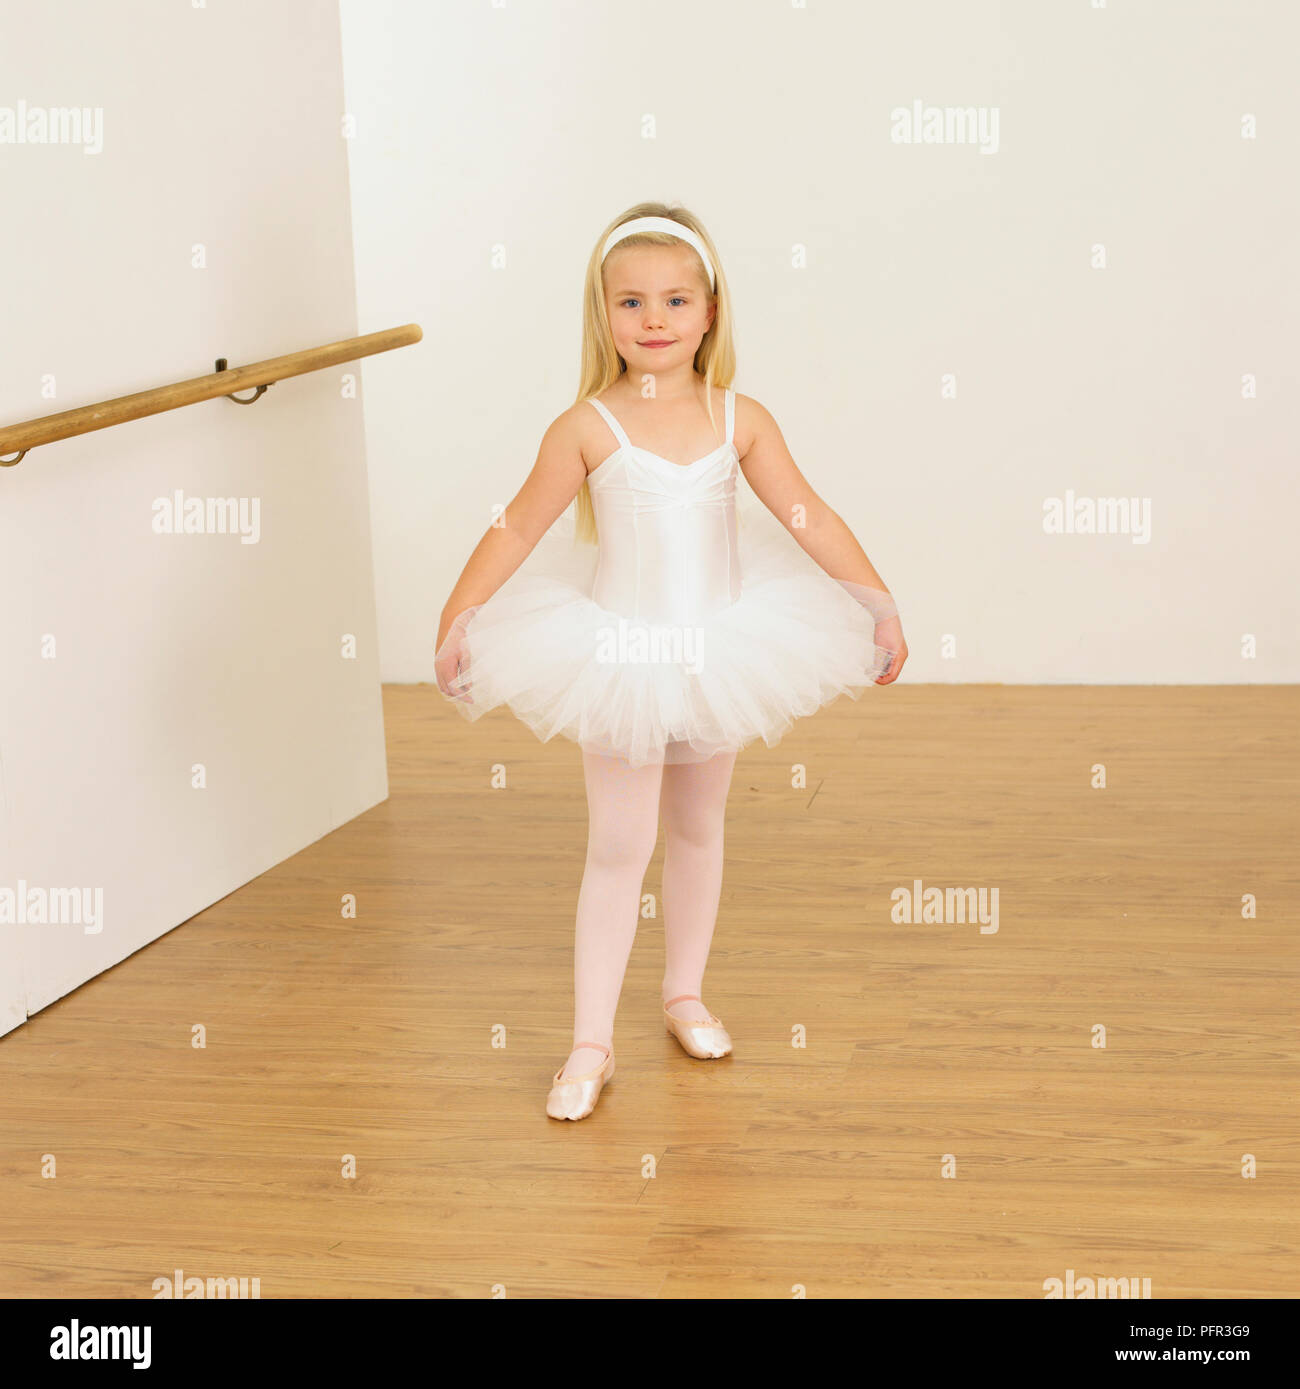 e095b5b29056 Girl wearing ballerina outfit showing first position